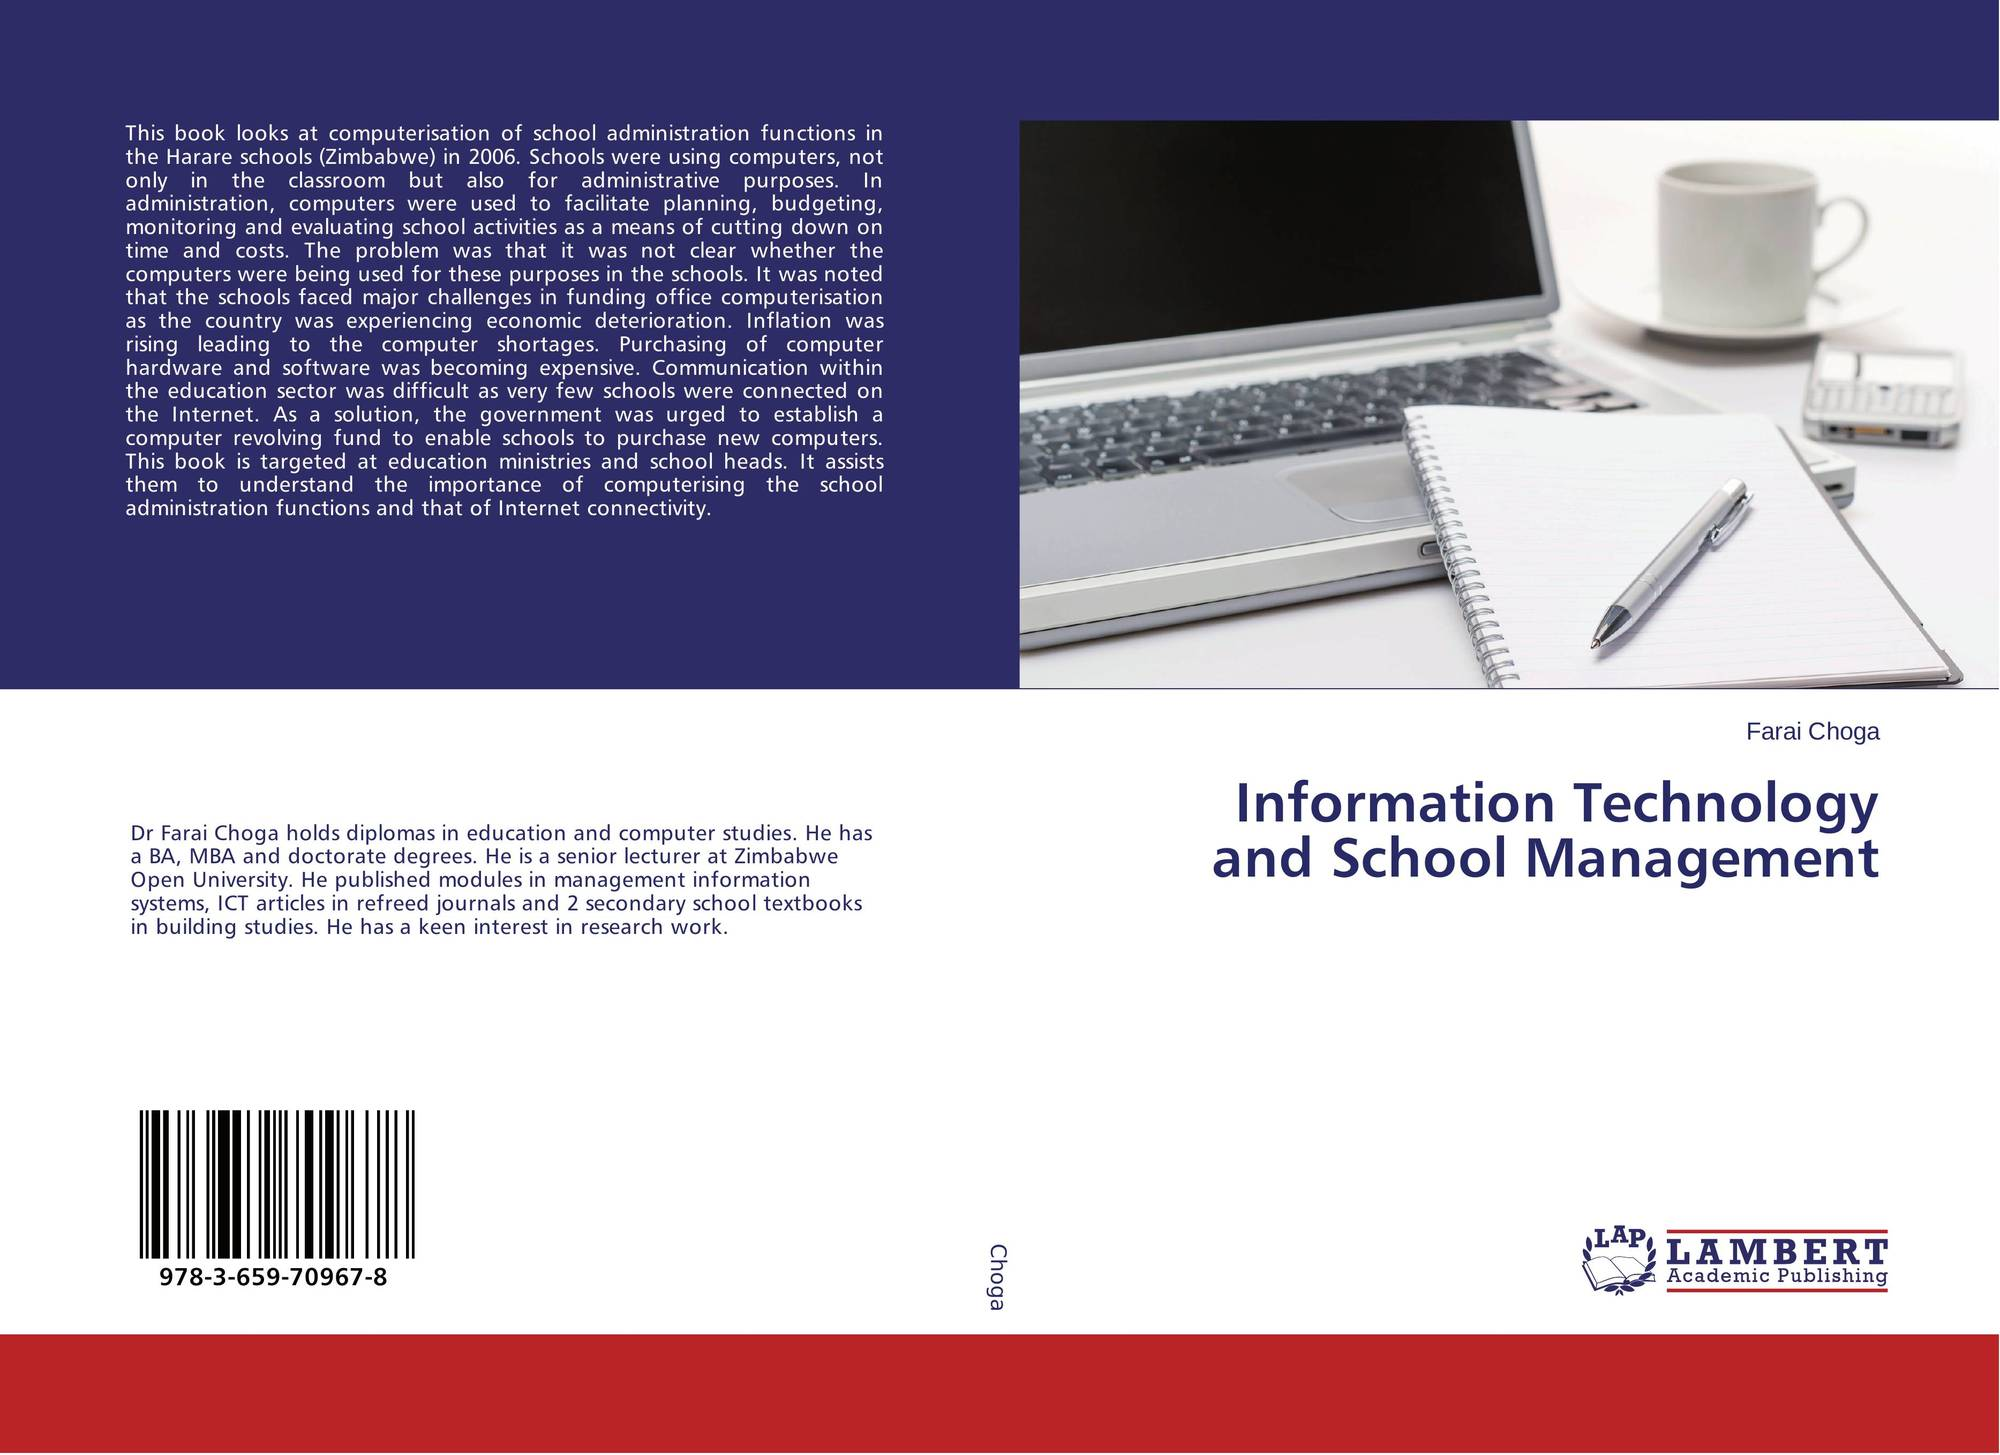 Information Technology Management: Information Technology And School Management, 978-3-659